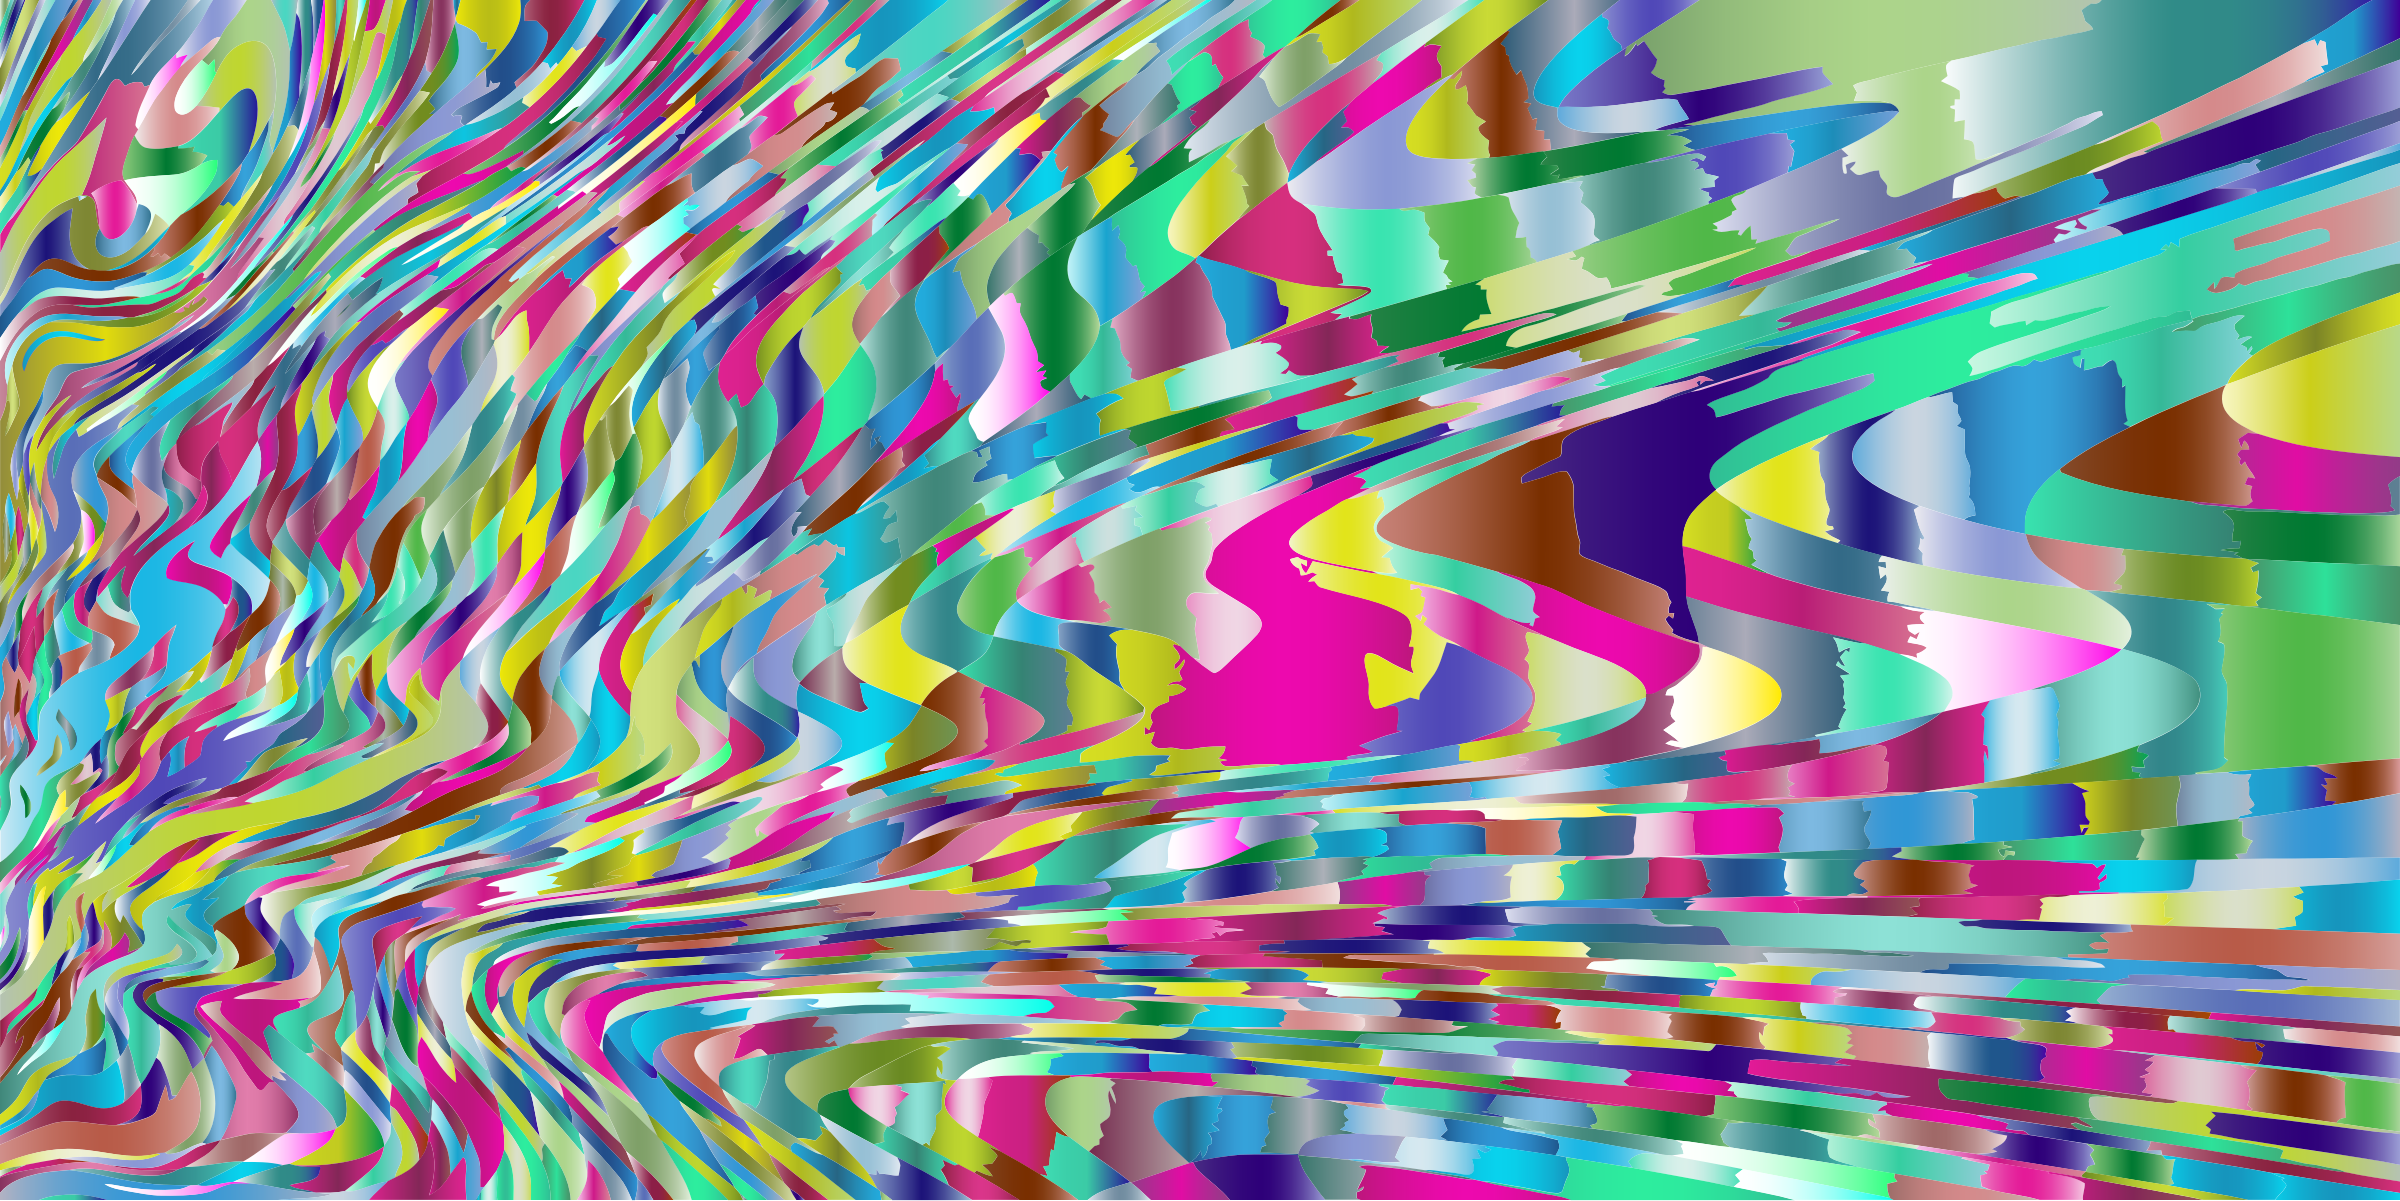 Prismatic Abstract  Background 2 by GDJ